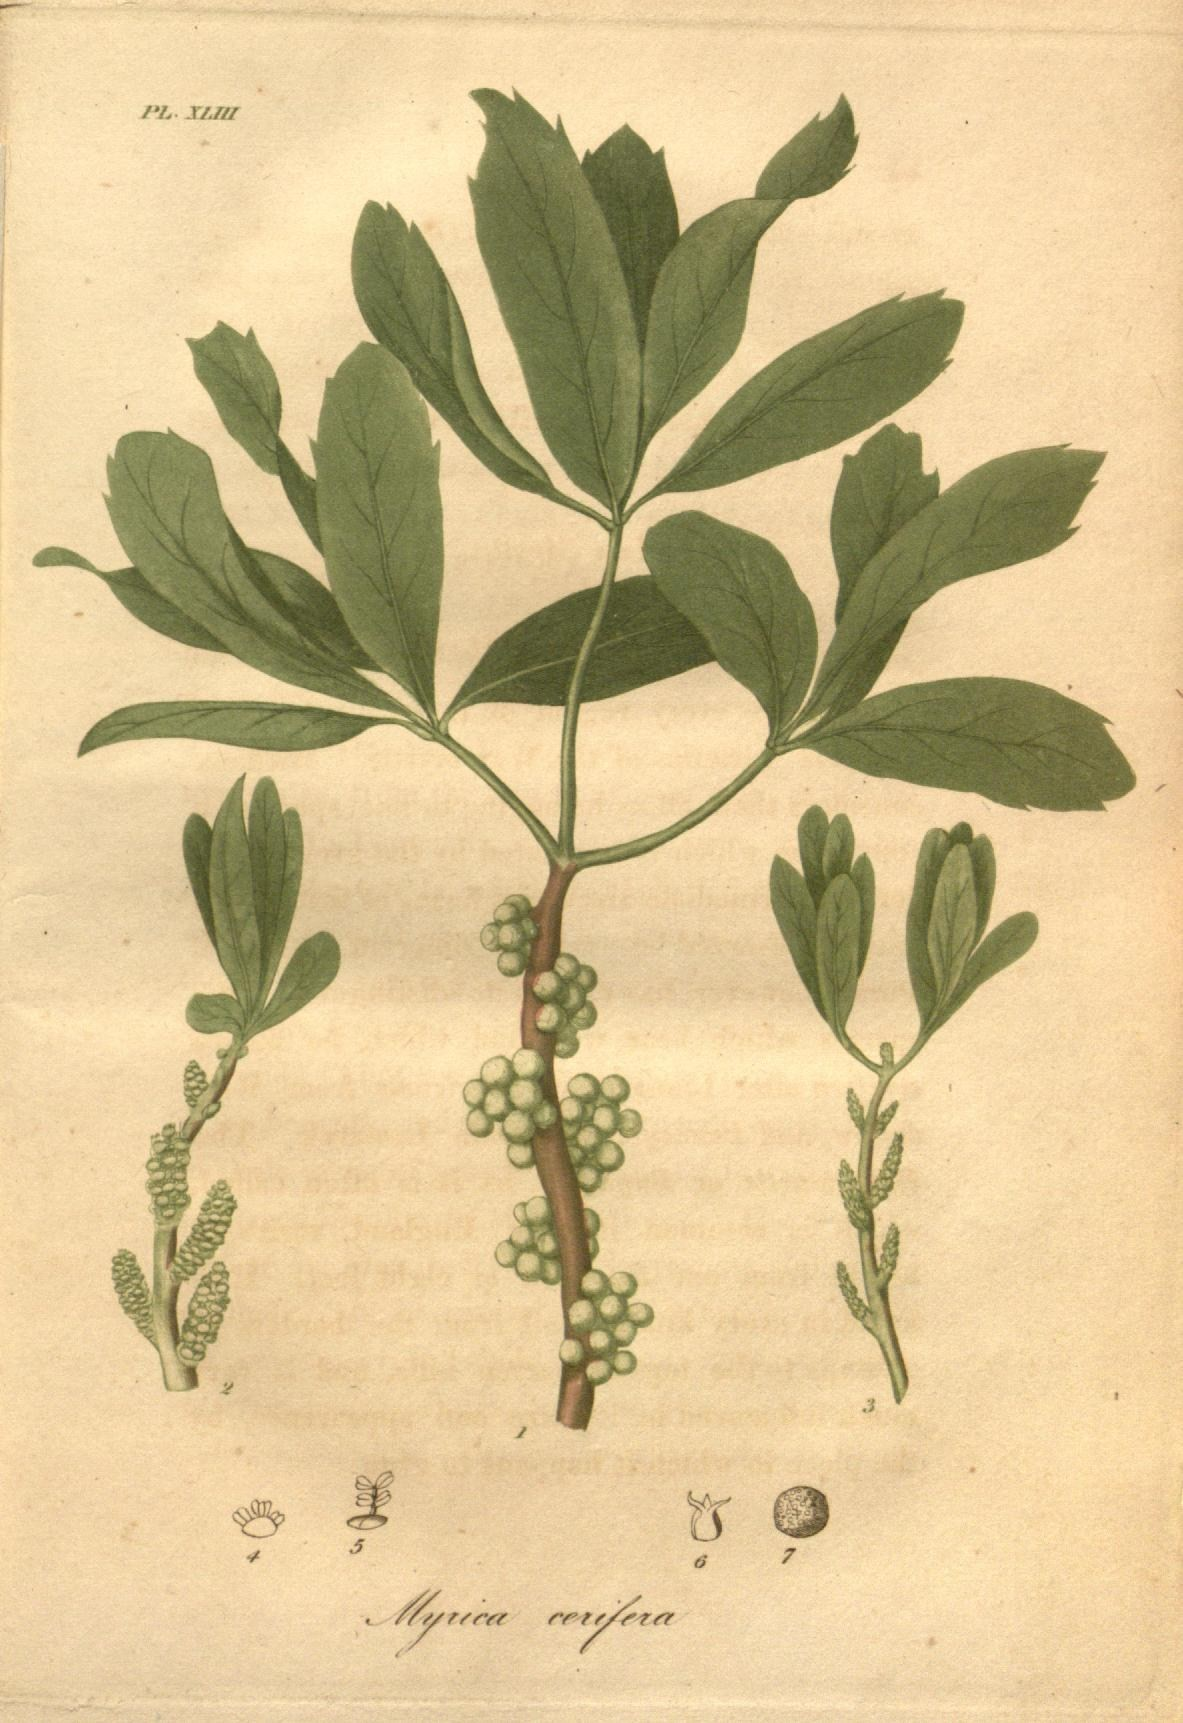 Image of southern bayberry